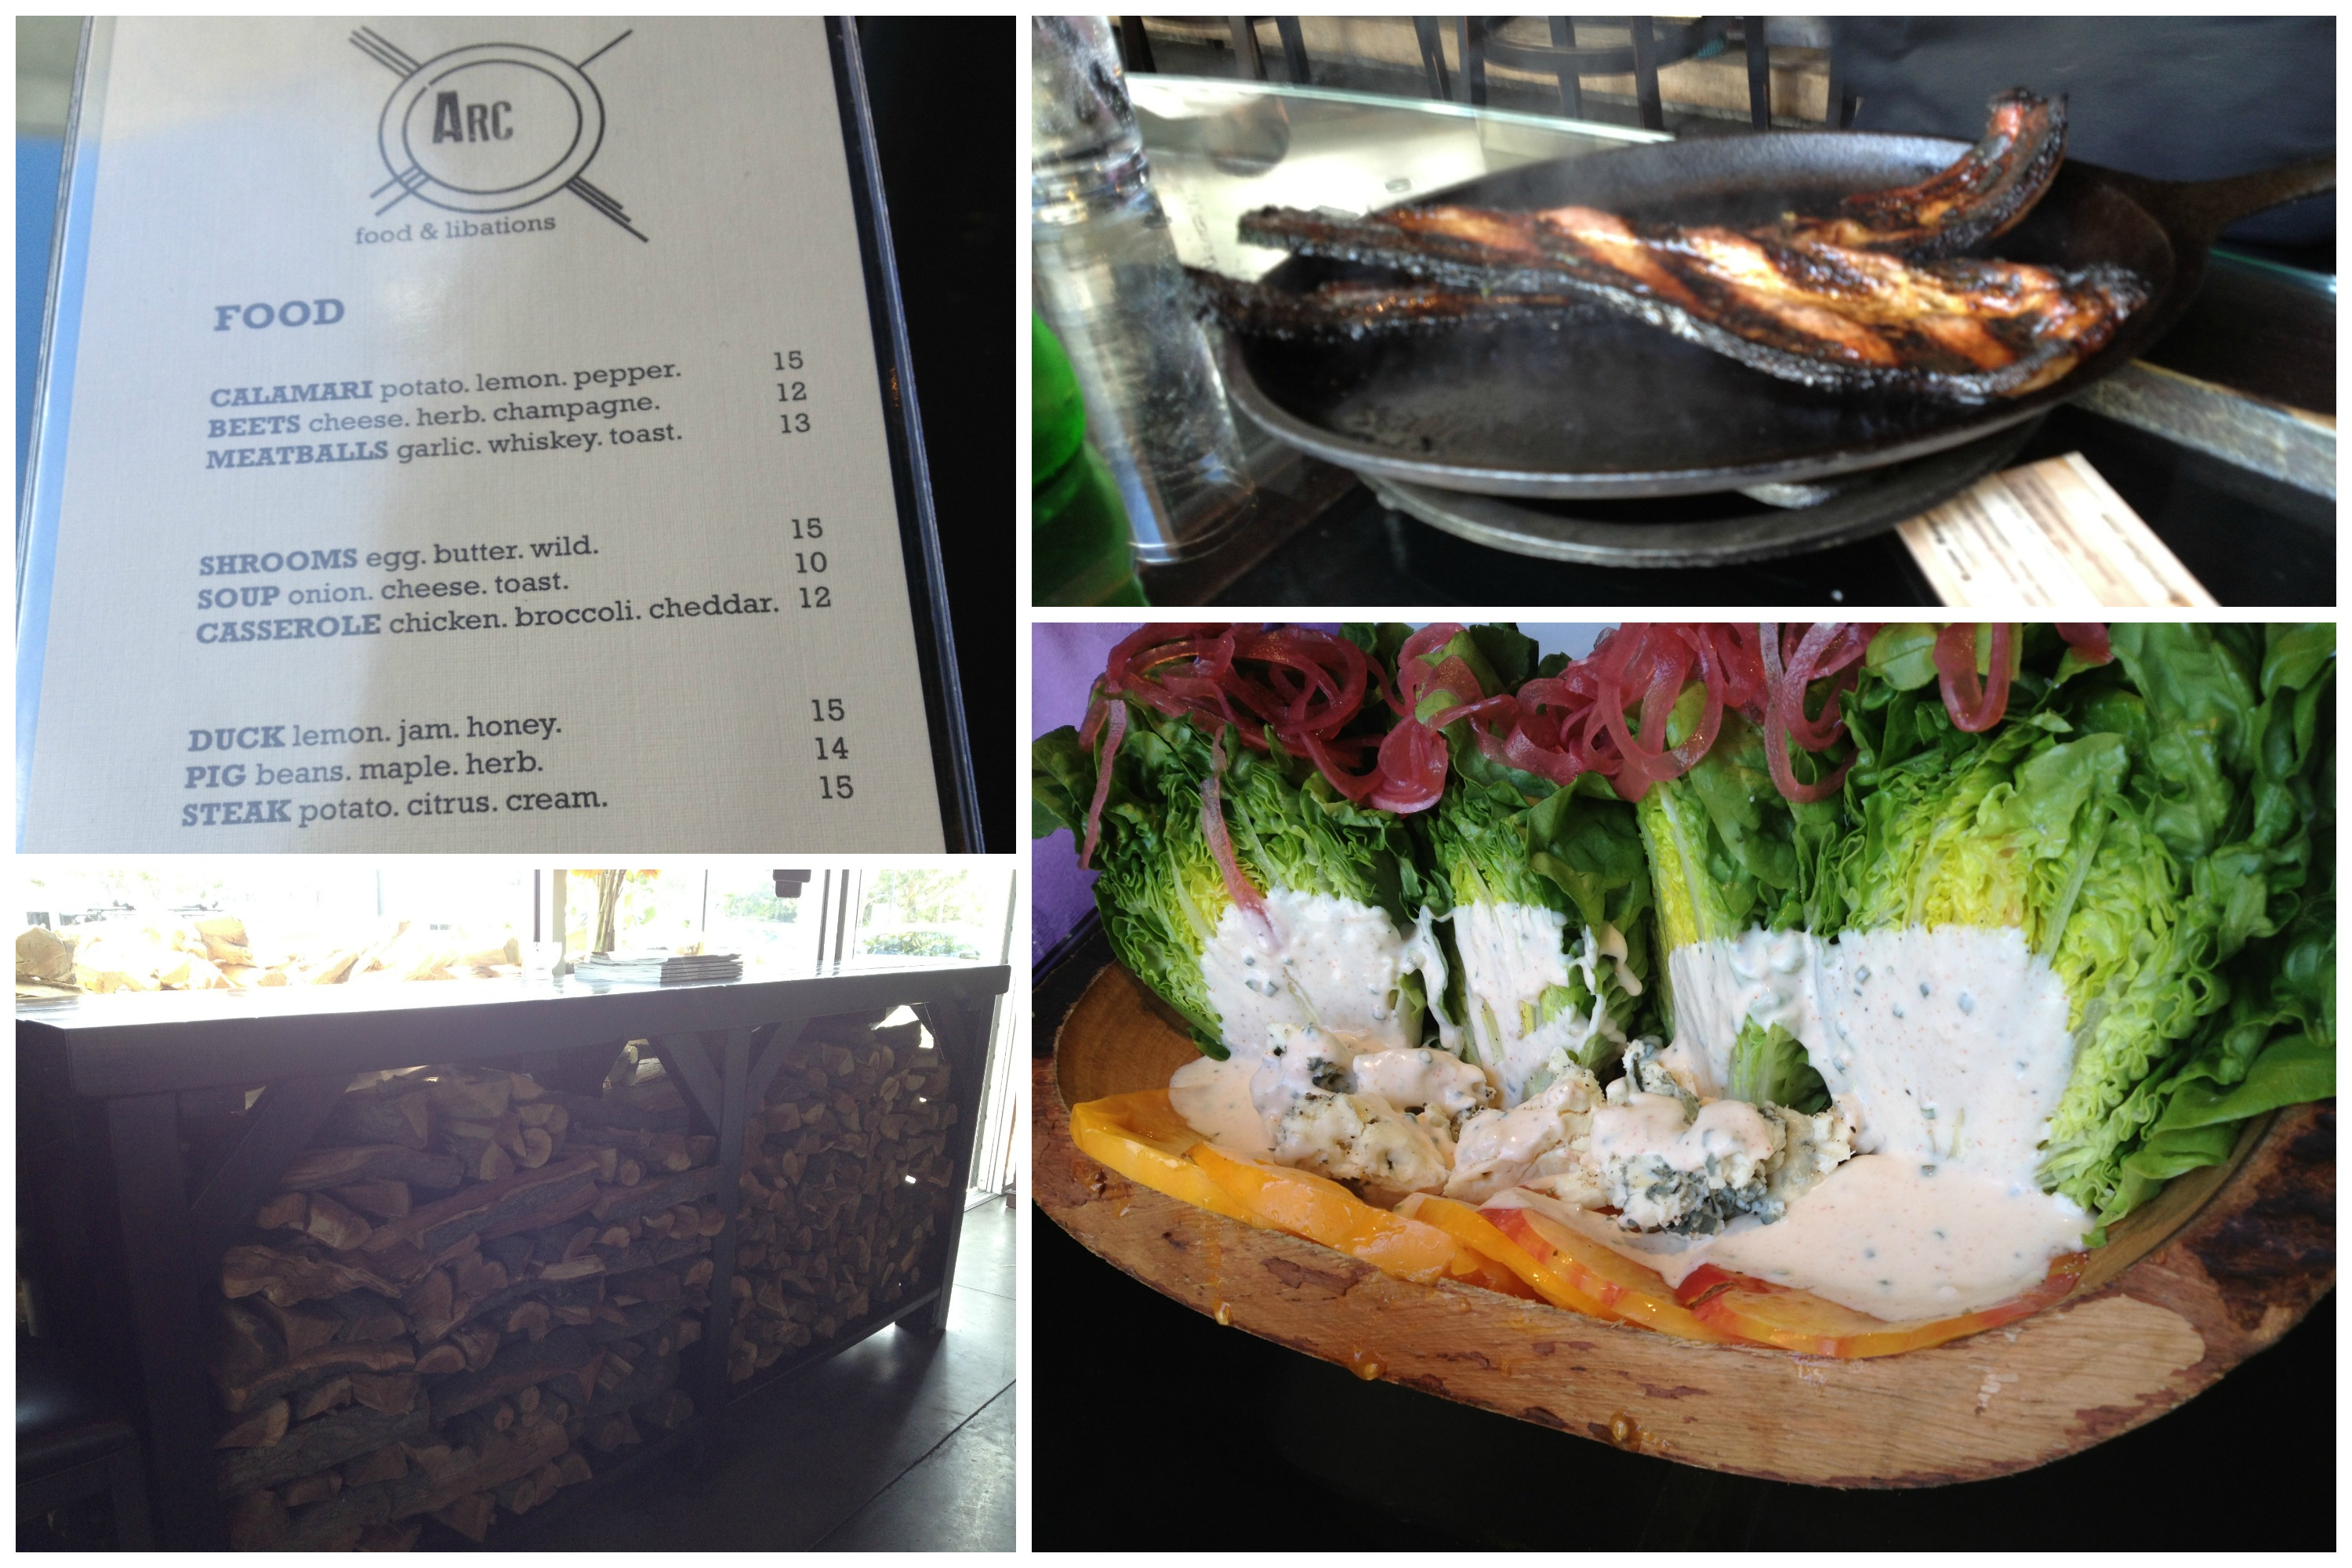 -Collage 1 (ARC Food & Libations)